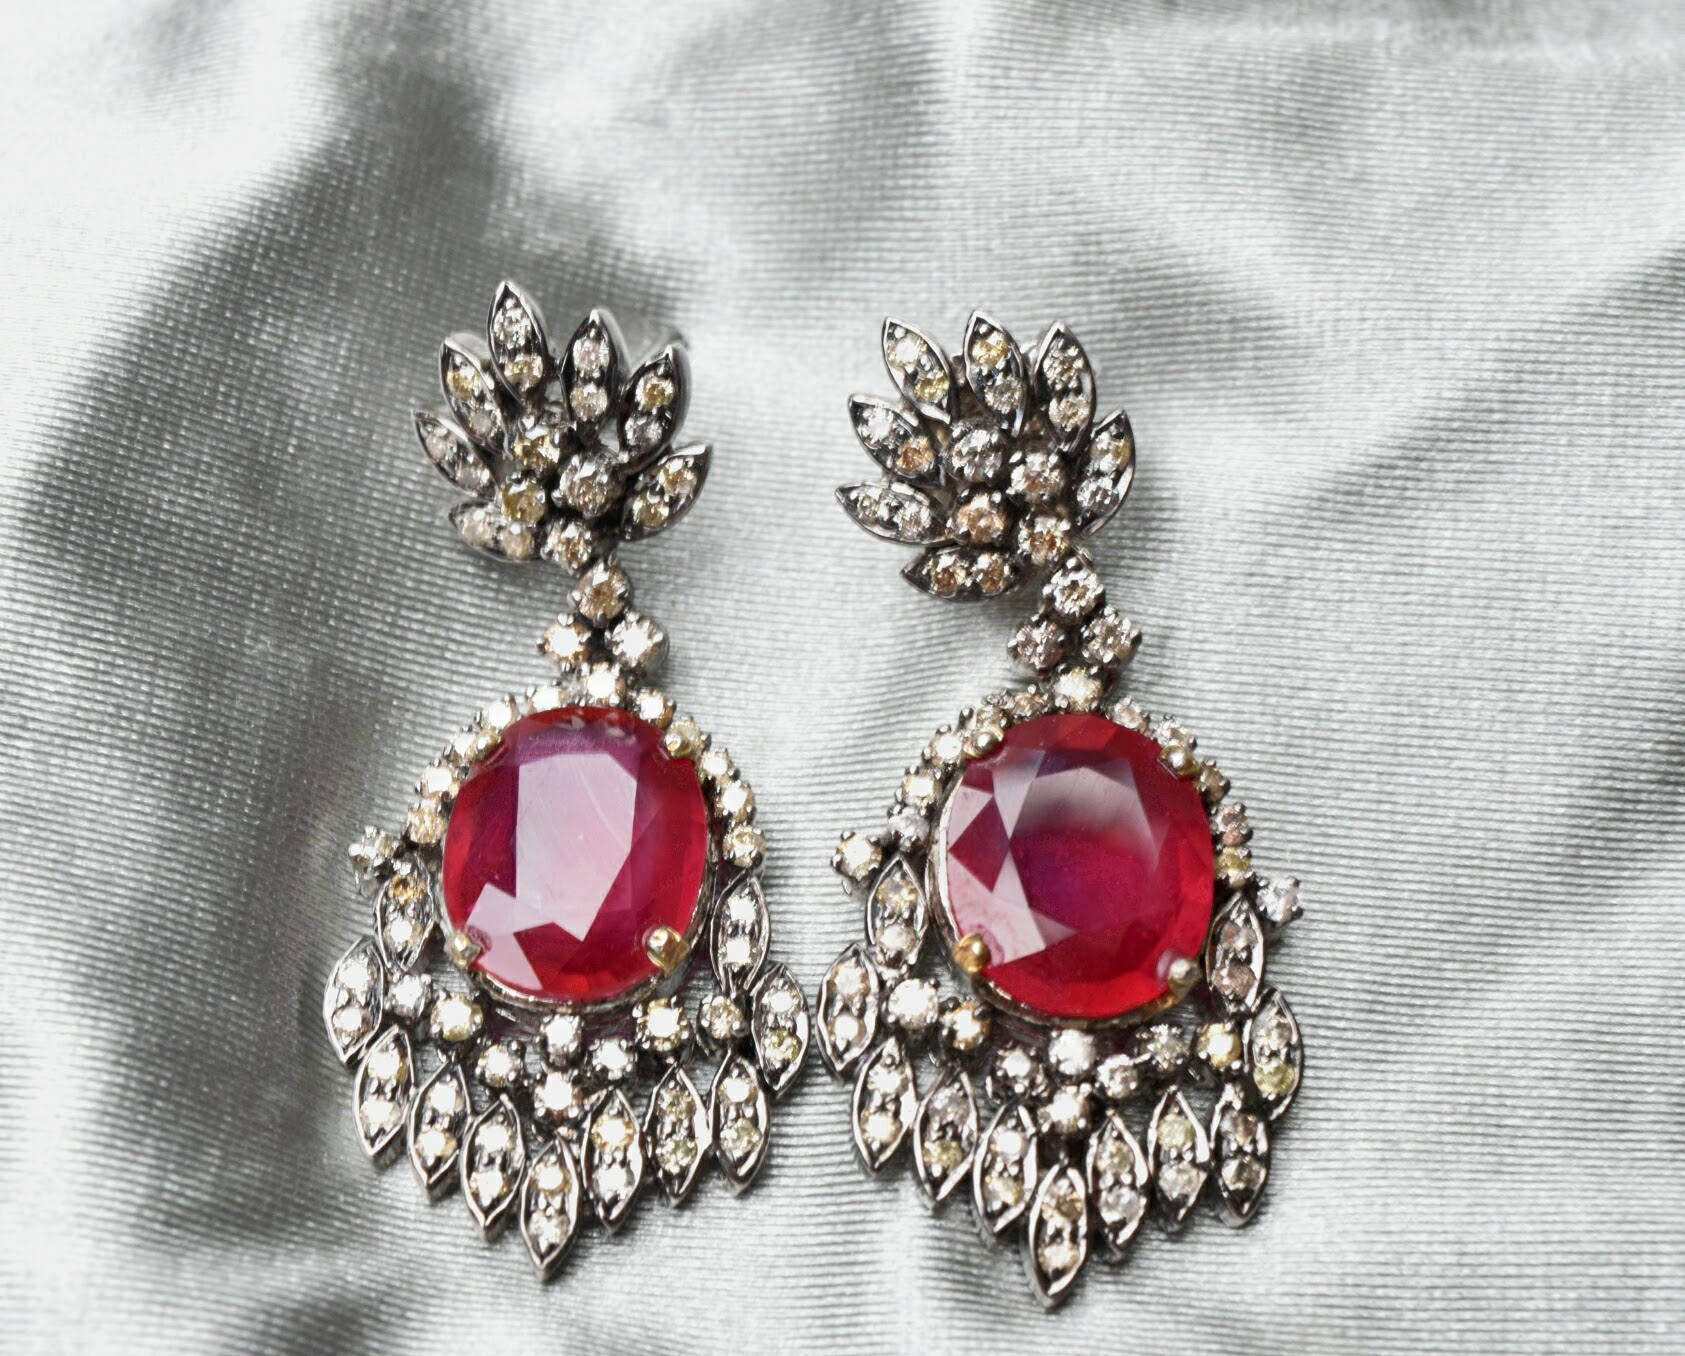 Ruby and Diamond Earring in Silver Oxidized Silver Vintage